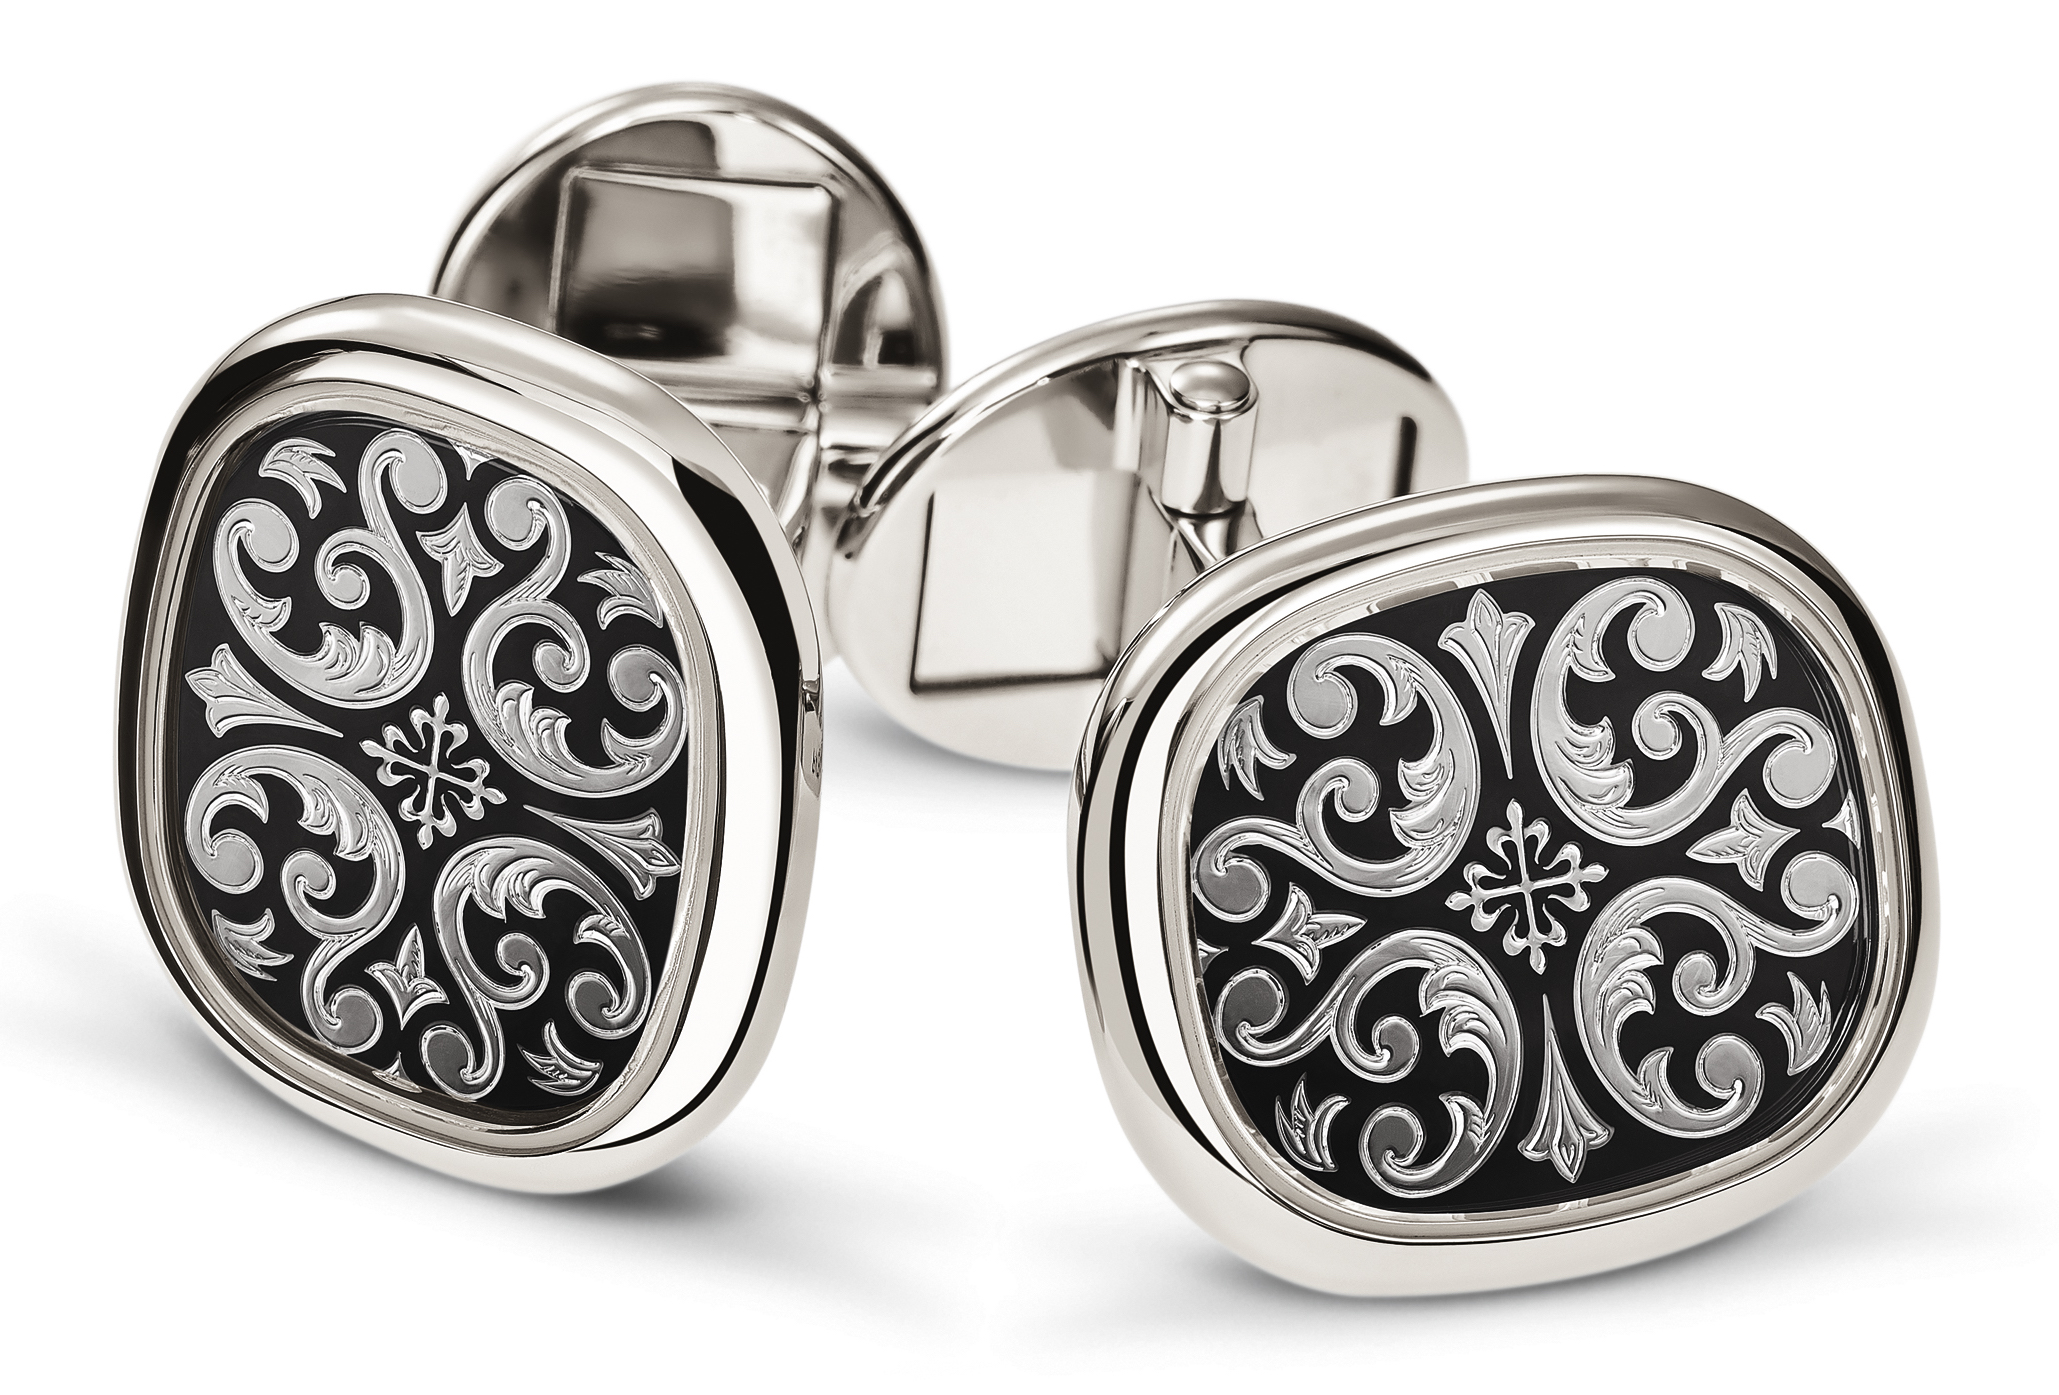 Patek Philippe Golden Ellipse Cufflinks